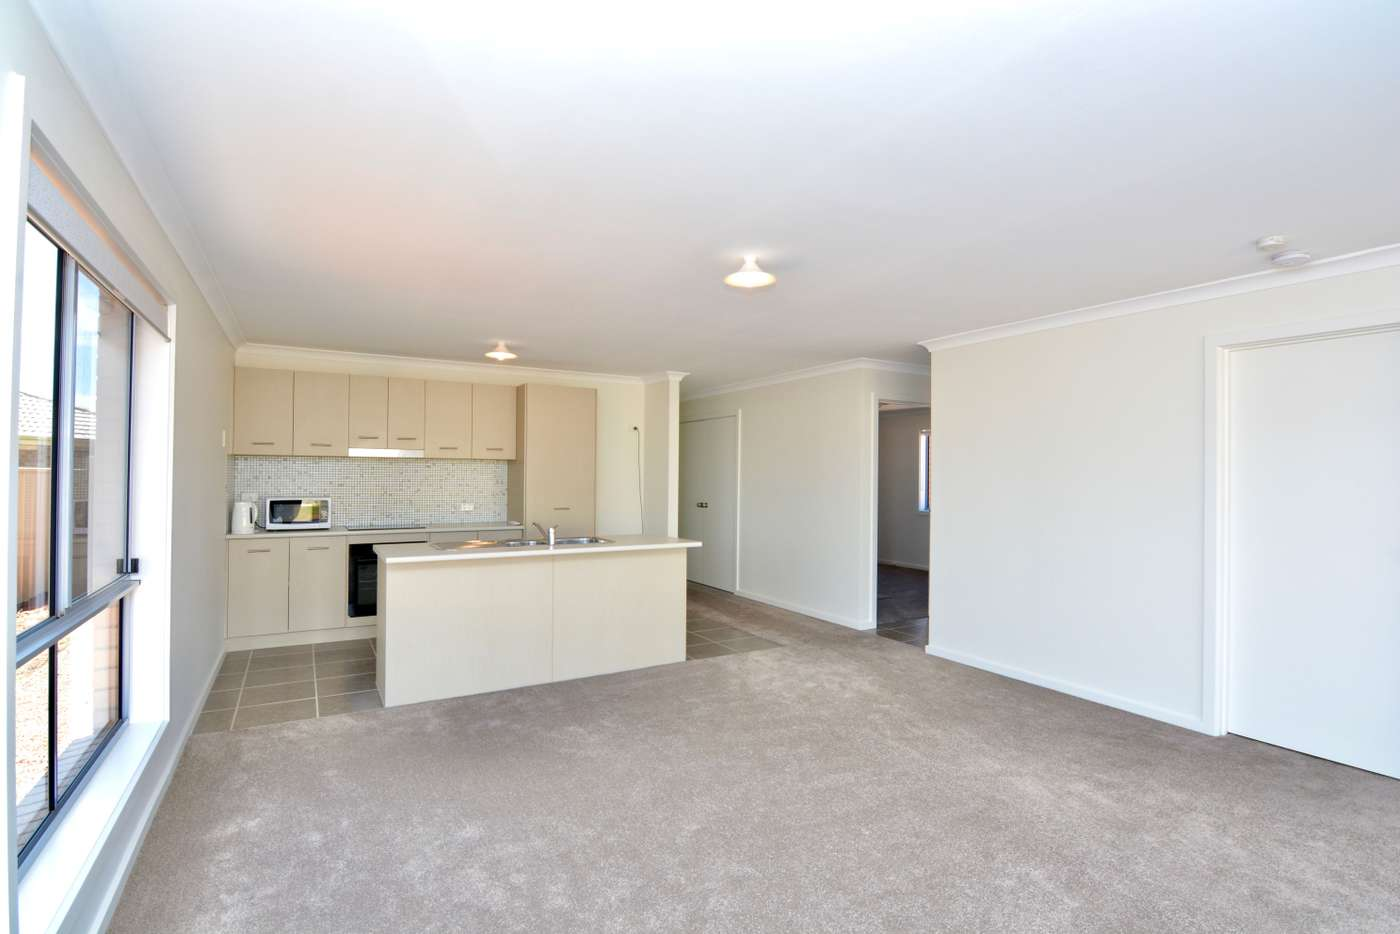 Fifth view of Homely house listing, 6 Harvard Court, Mildura VIC 3500